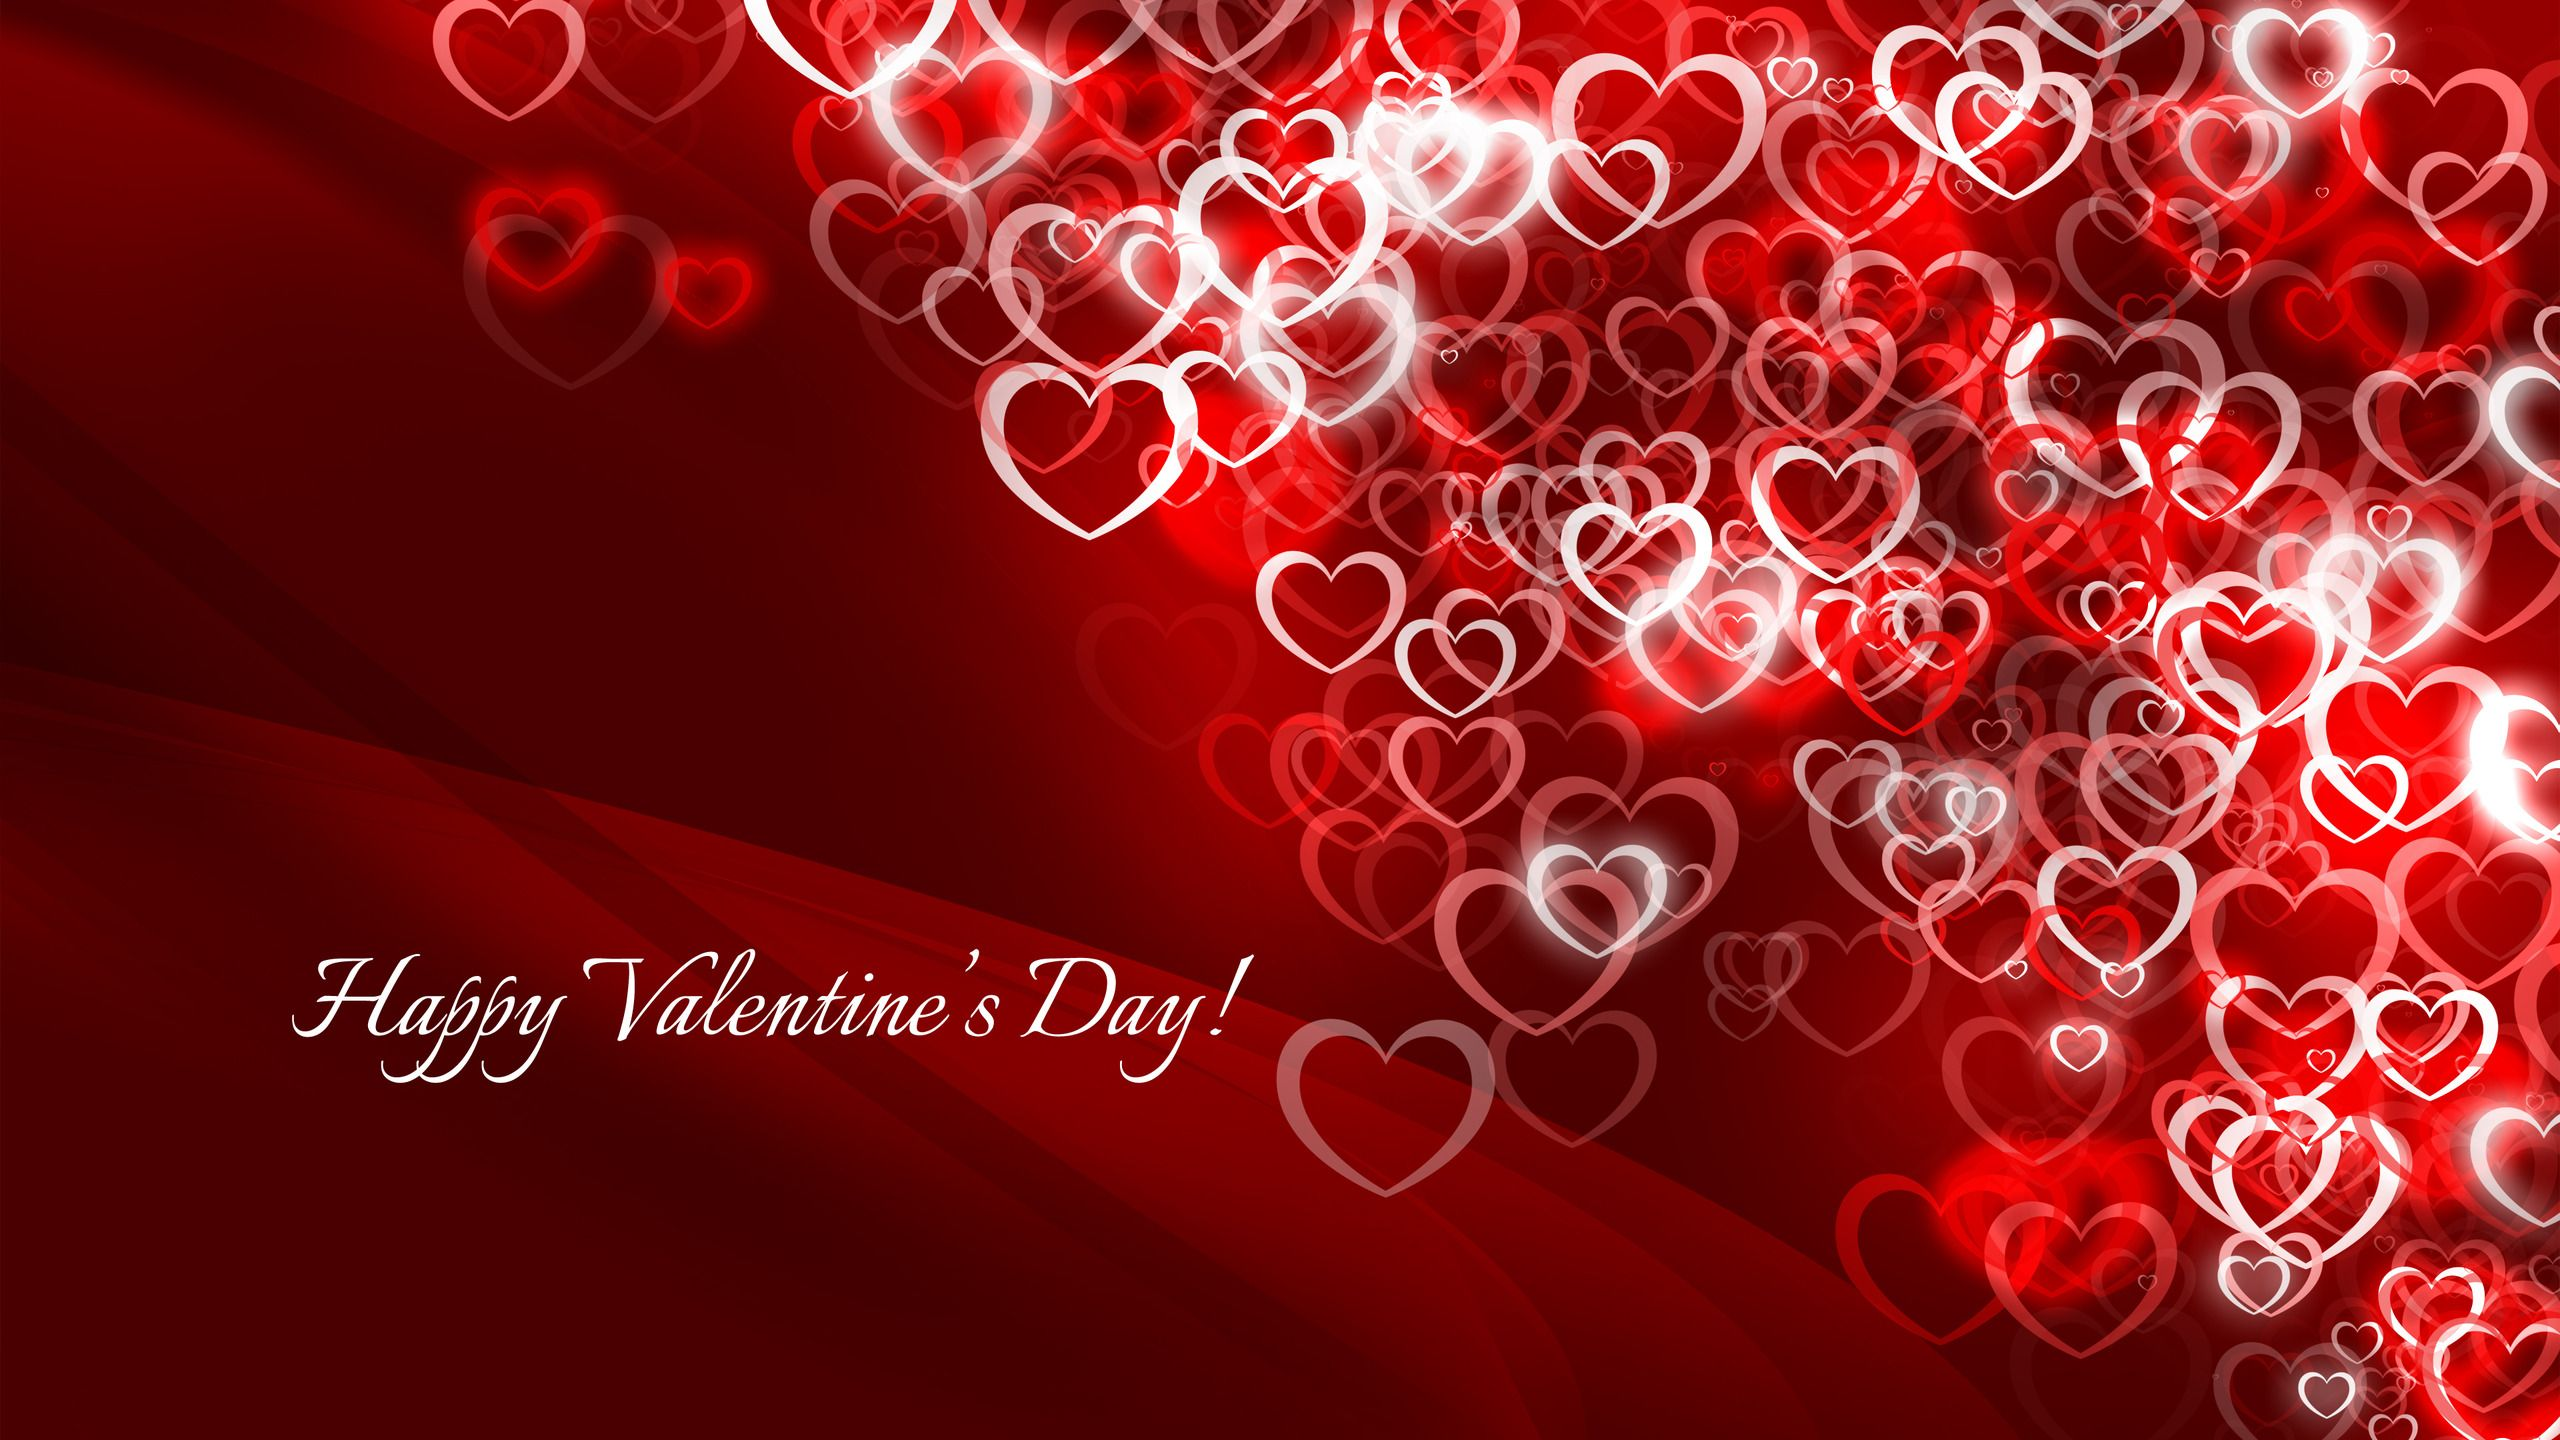 Happy Valentines Day Wallpapers   Top Happy Valentines Day 2560x1440